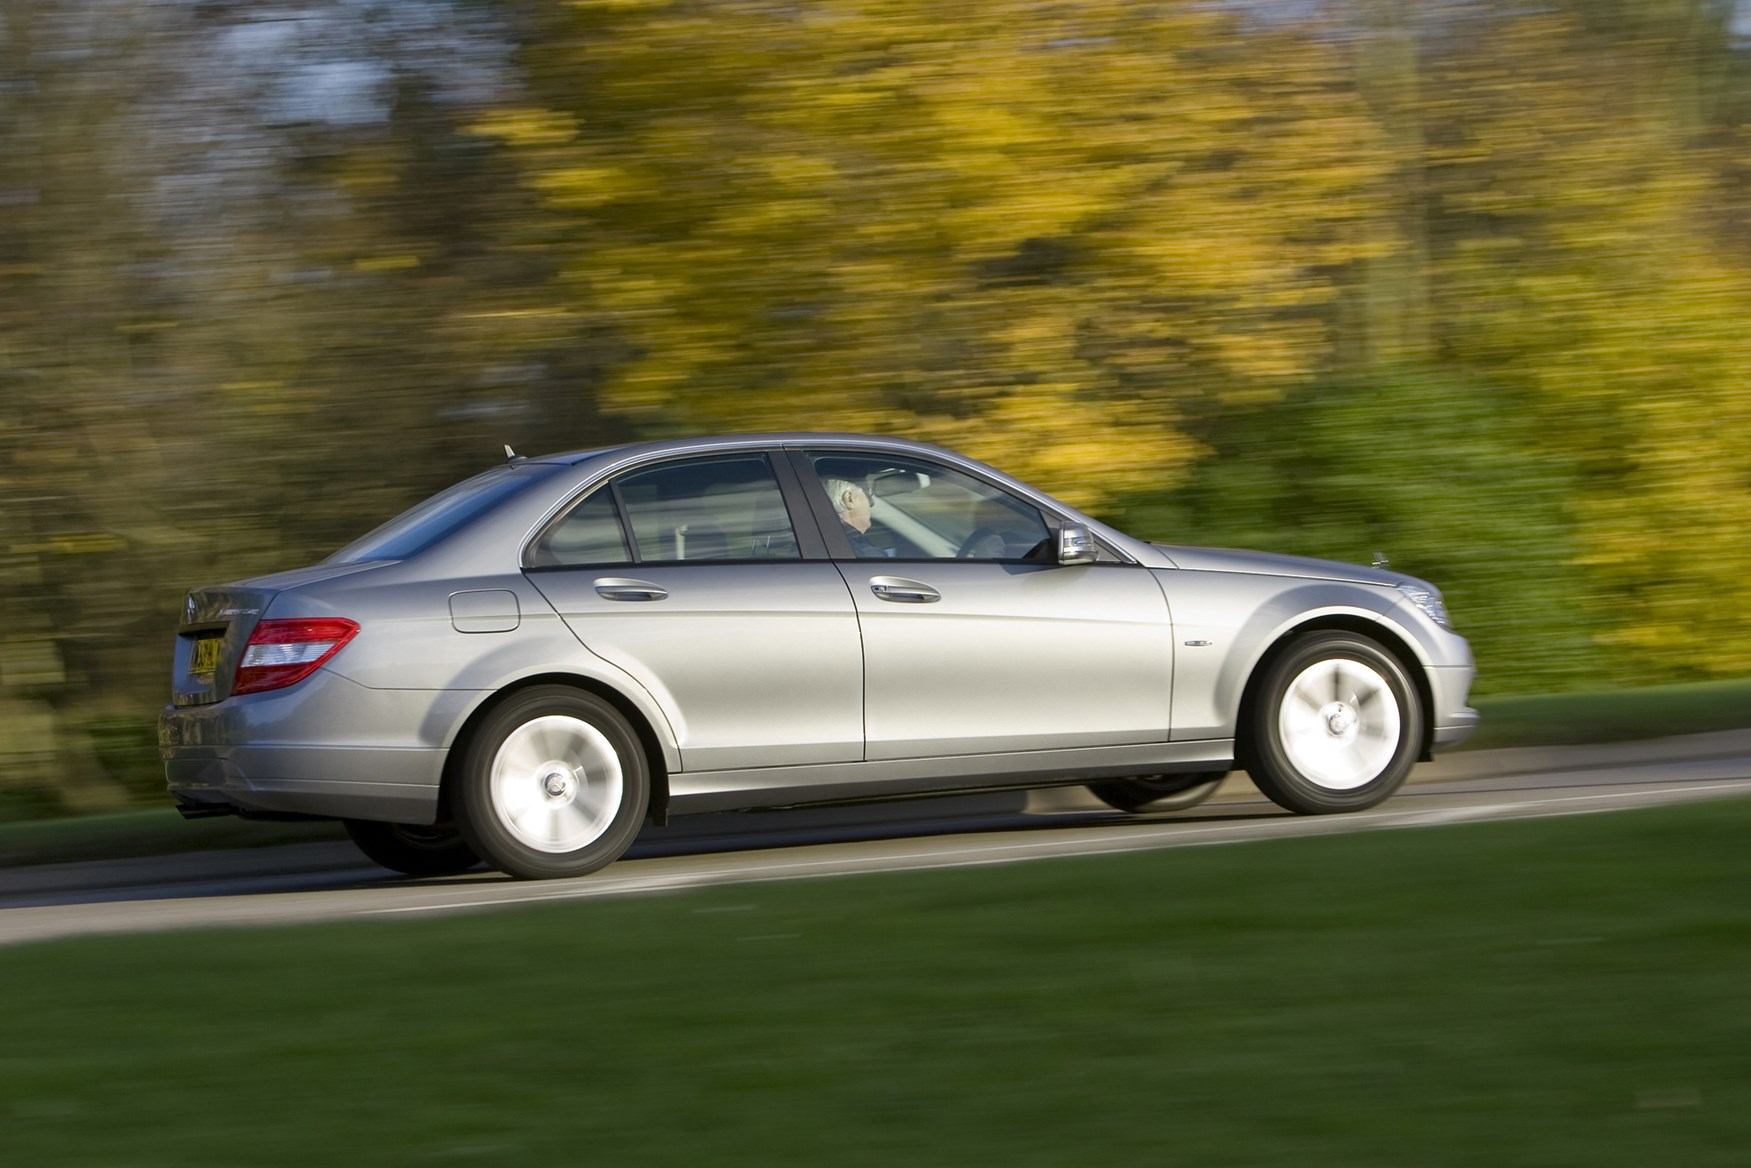 Used Mercedes-Benz C-Class Saloon (2007 - 2014) Practicality